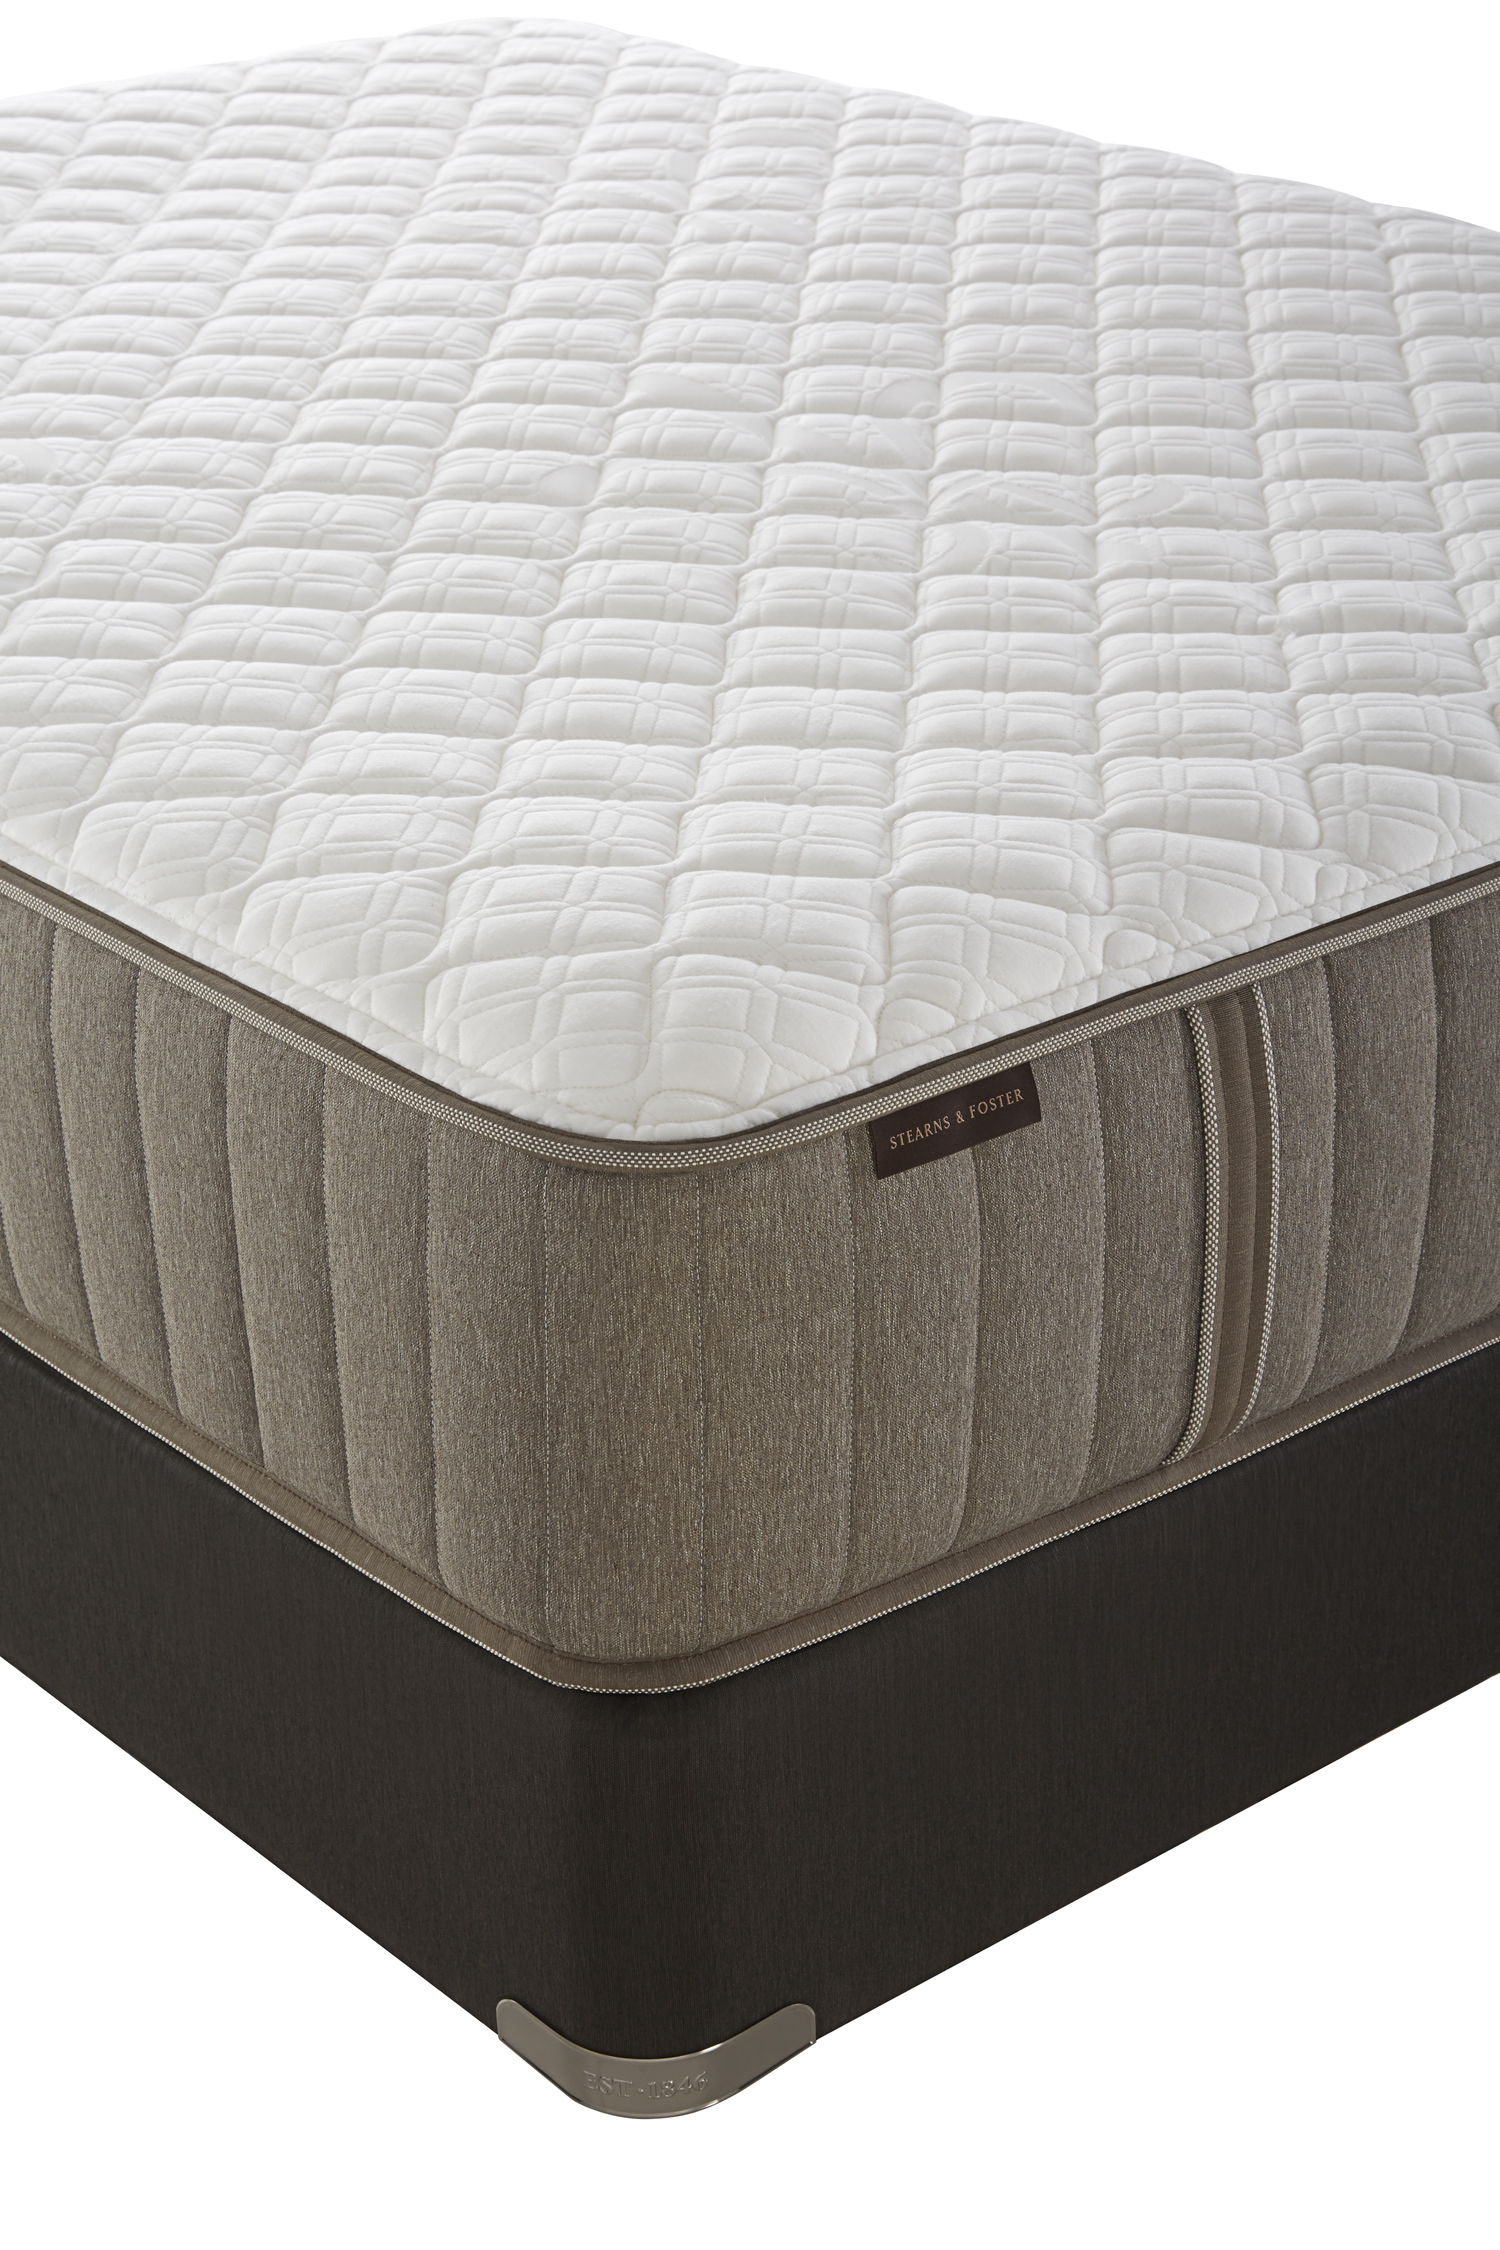 Firmest Mattresses On The Market Stearns Foster Mckee Luxury Ultra Firm Full Mattress